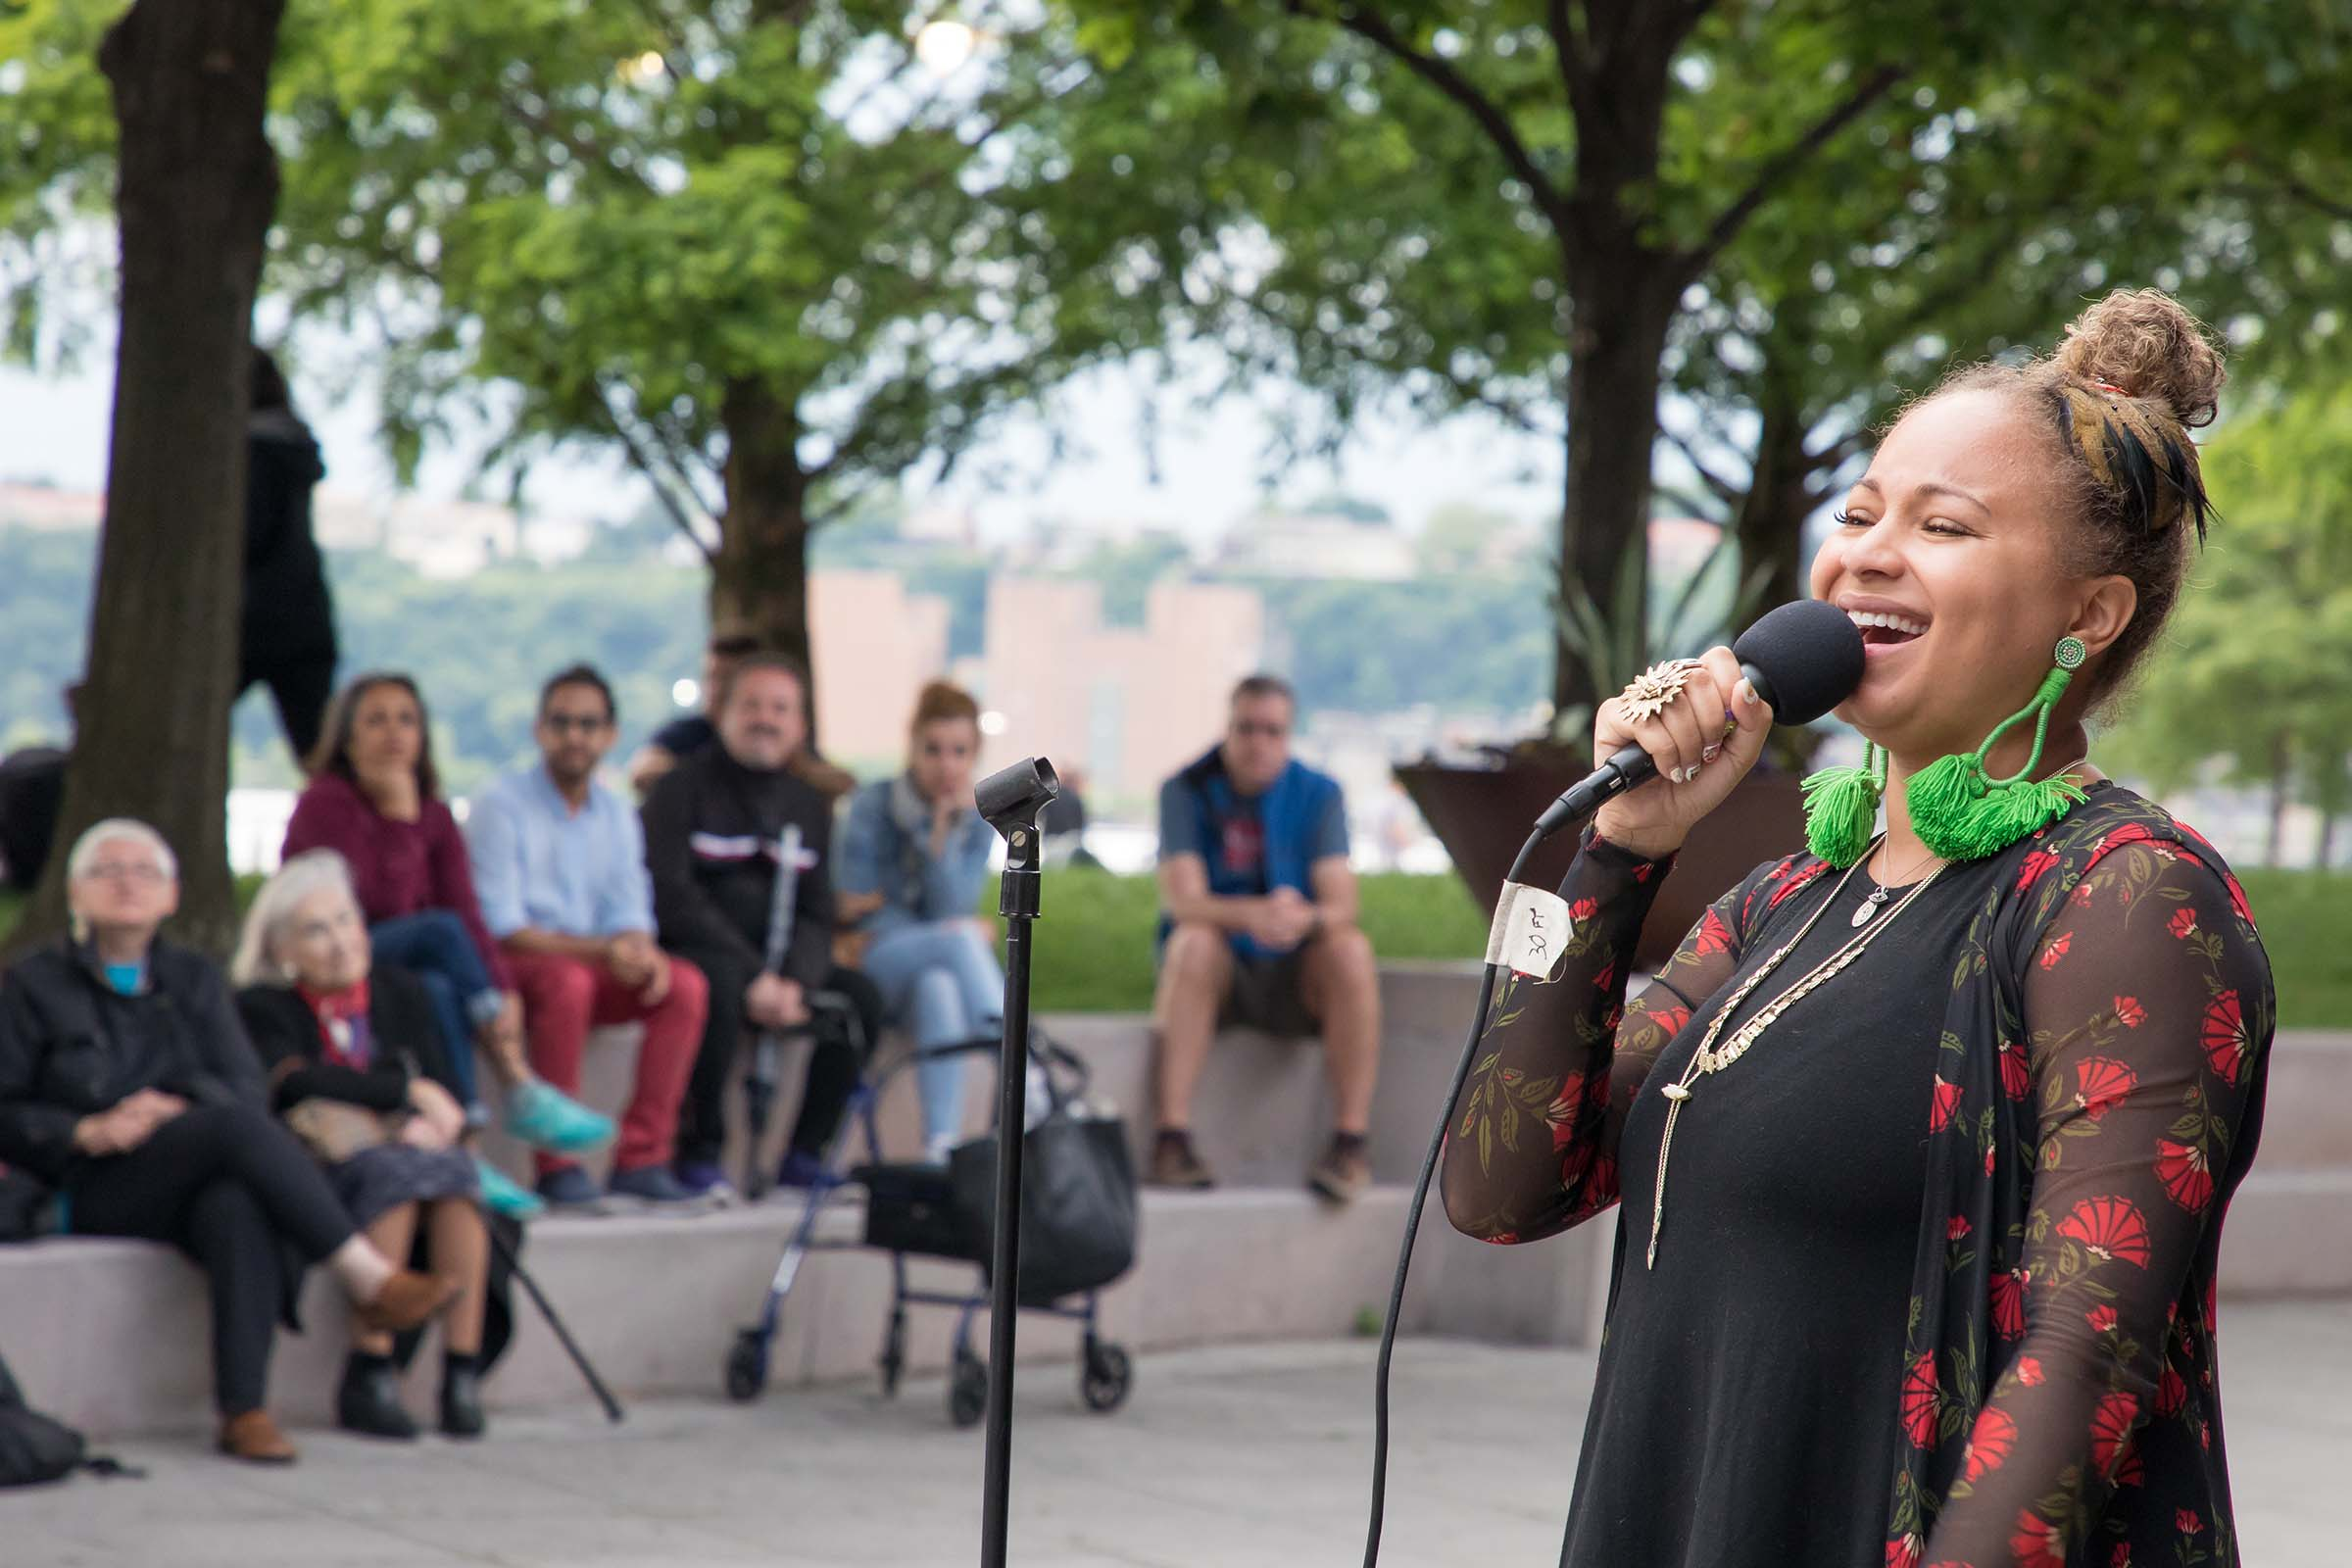 Smiling, a jazz singer hits her notes as the audience watches